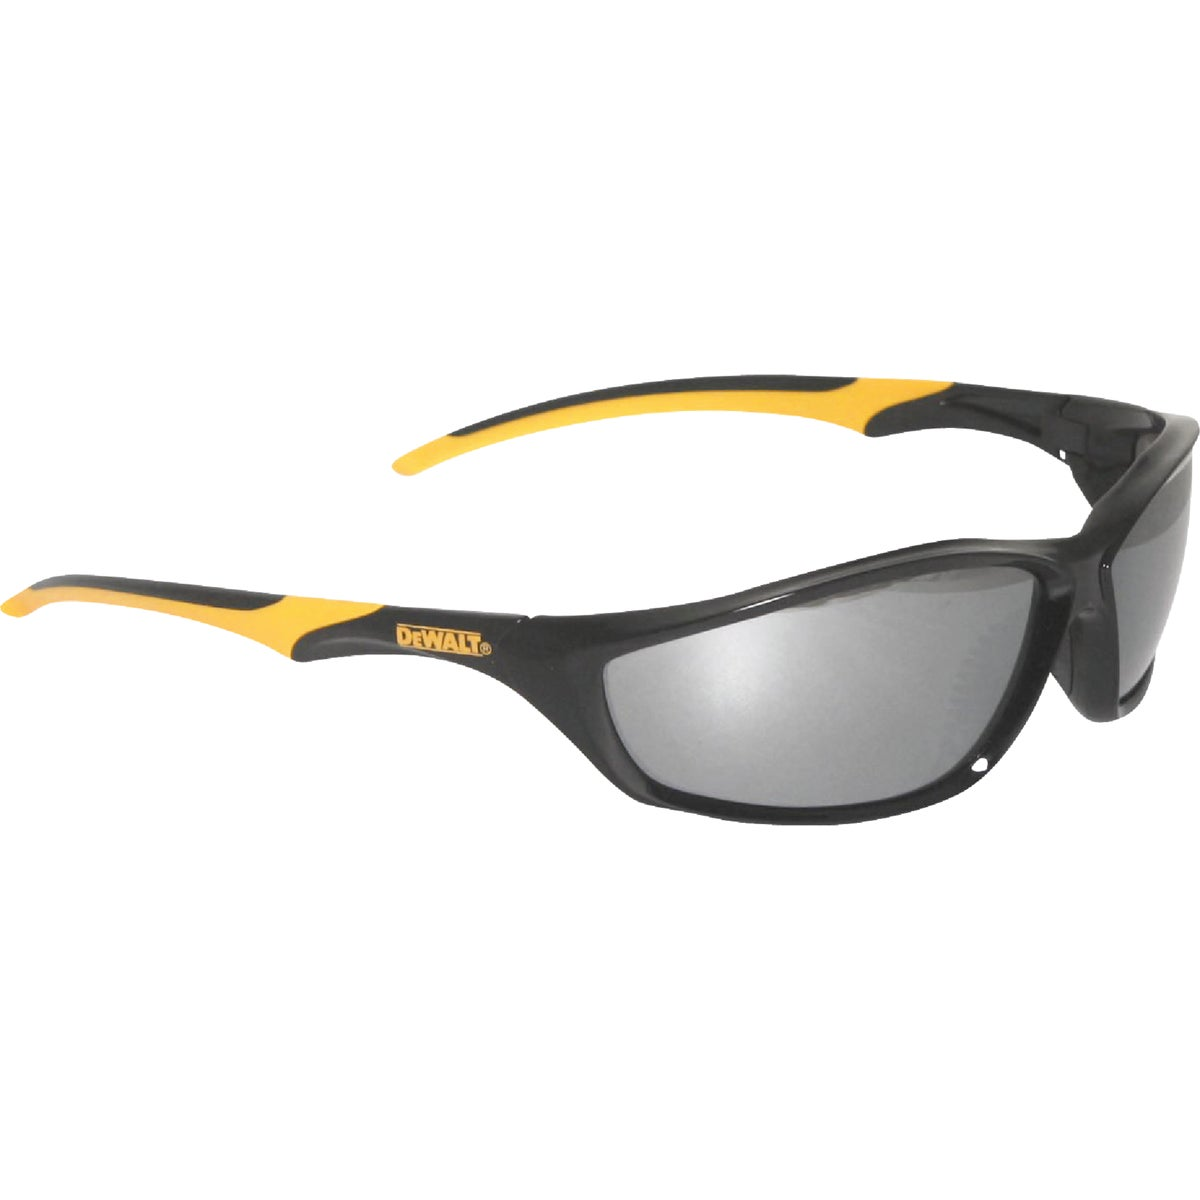 ROUTER SAFETY GLASSES - DPG96-6C by Radians